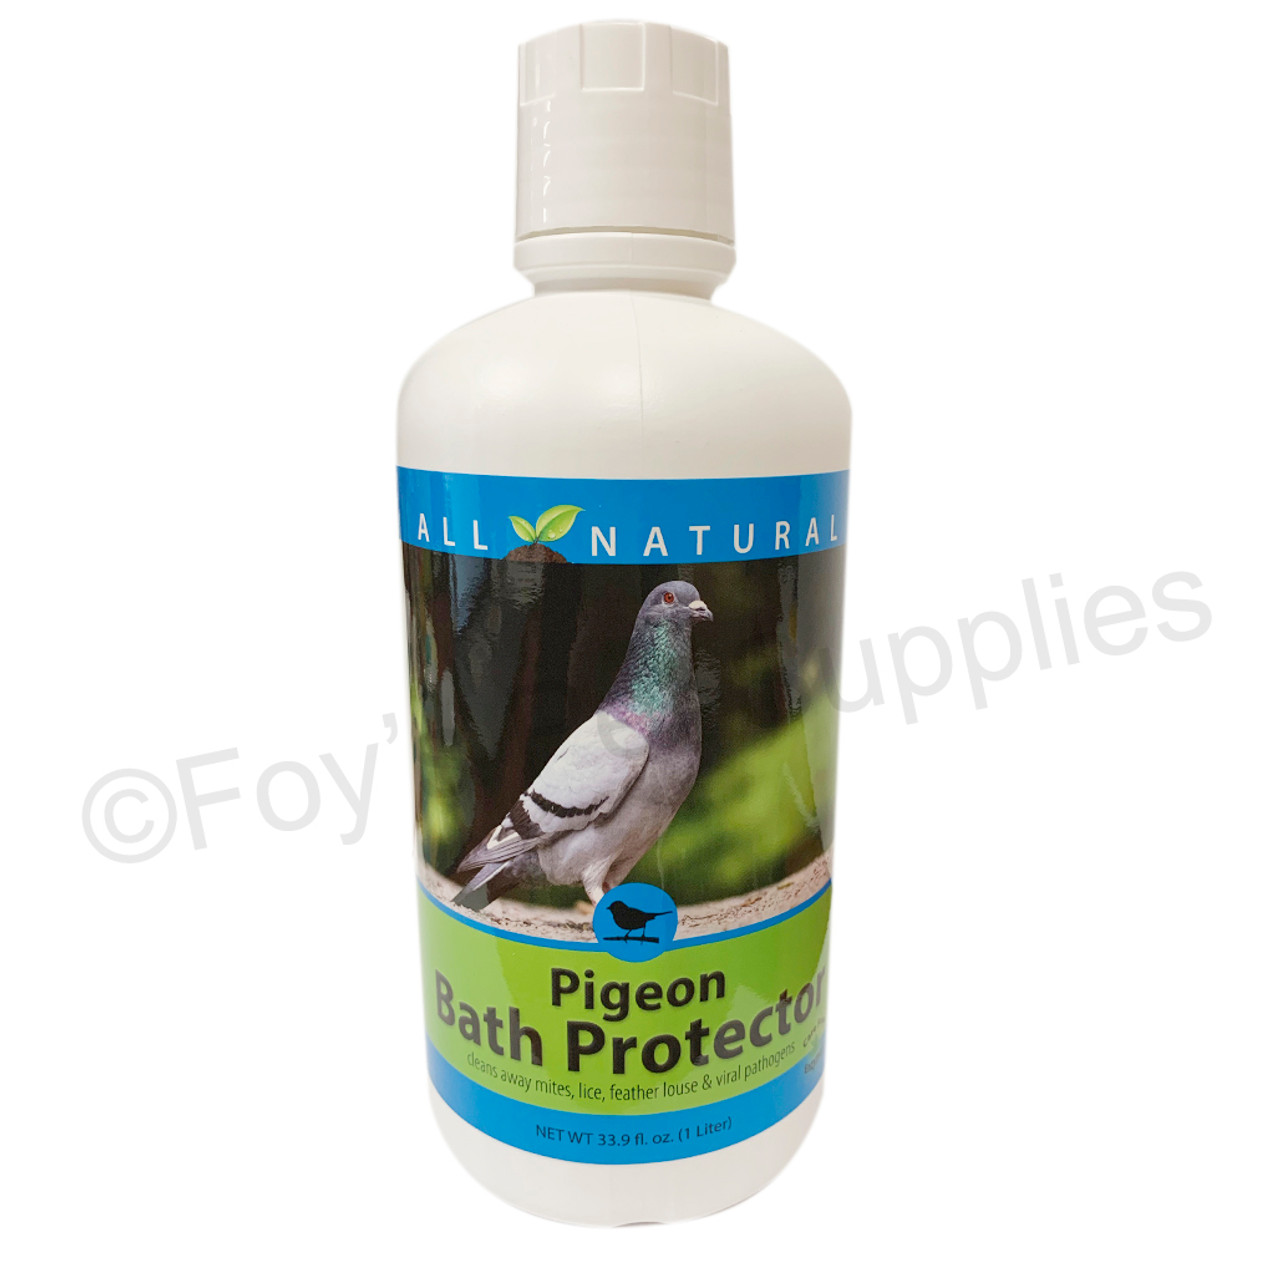 1683, Pigeon Bath Protector, all natural, mites, lice, and fleas